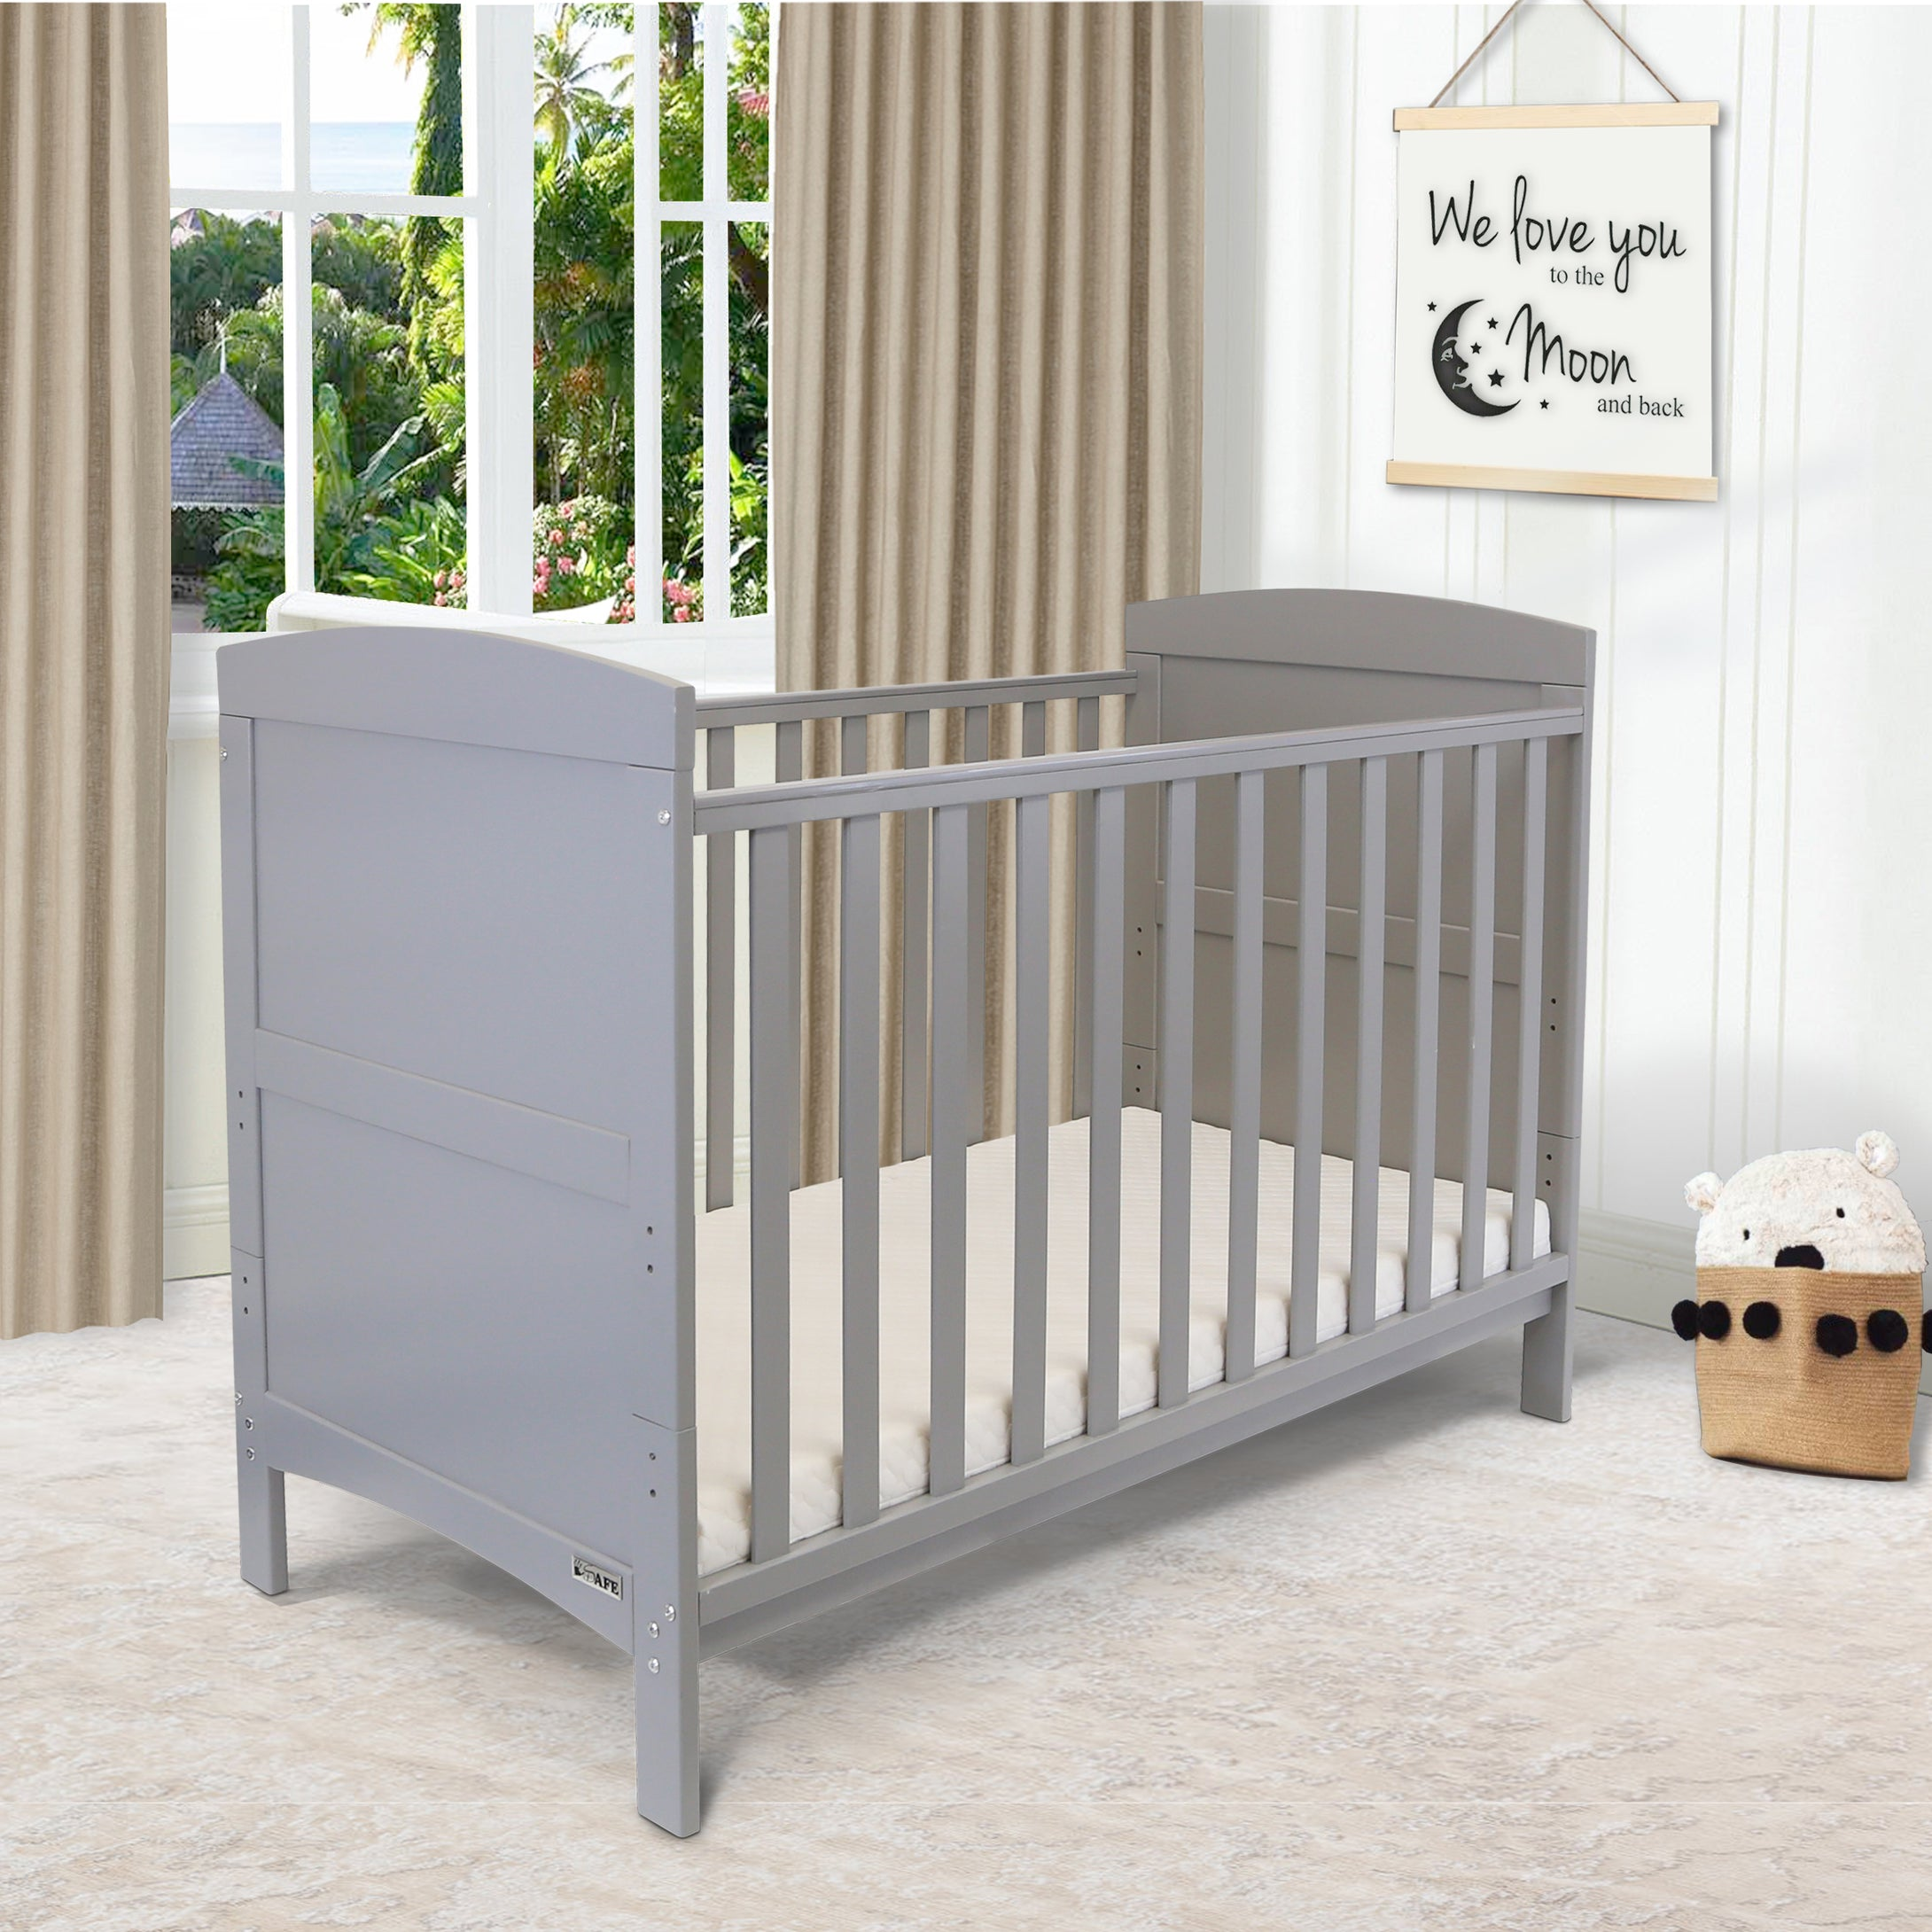 iSafe Baby Cot Bed Toddler Bed - Arnie (Grey Including Mattress)